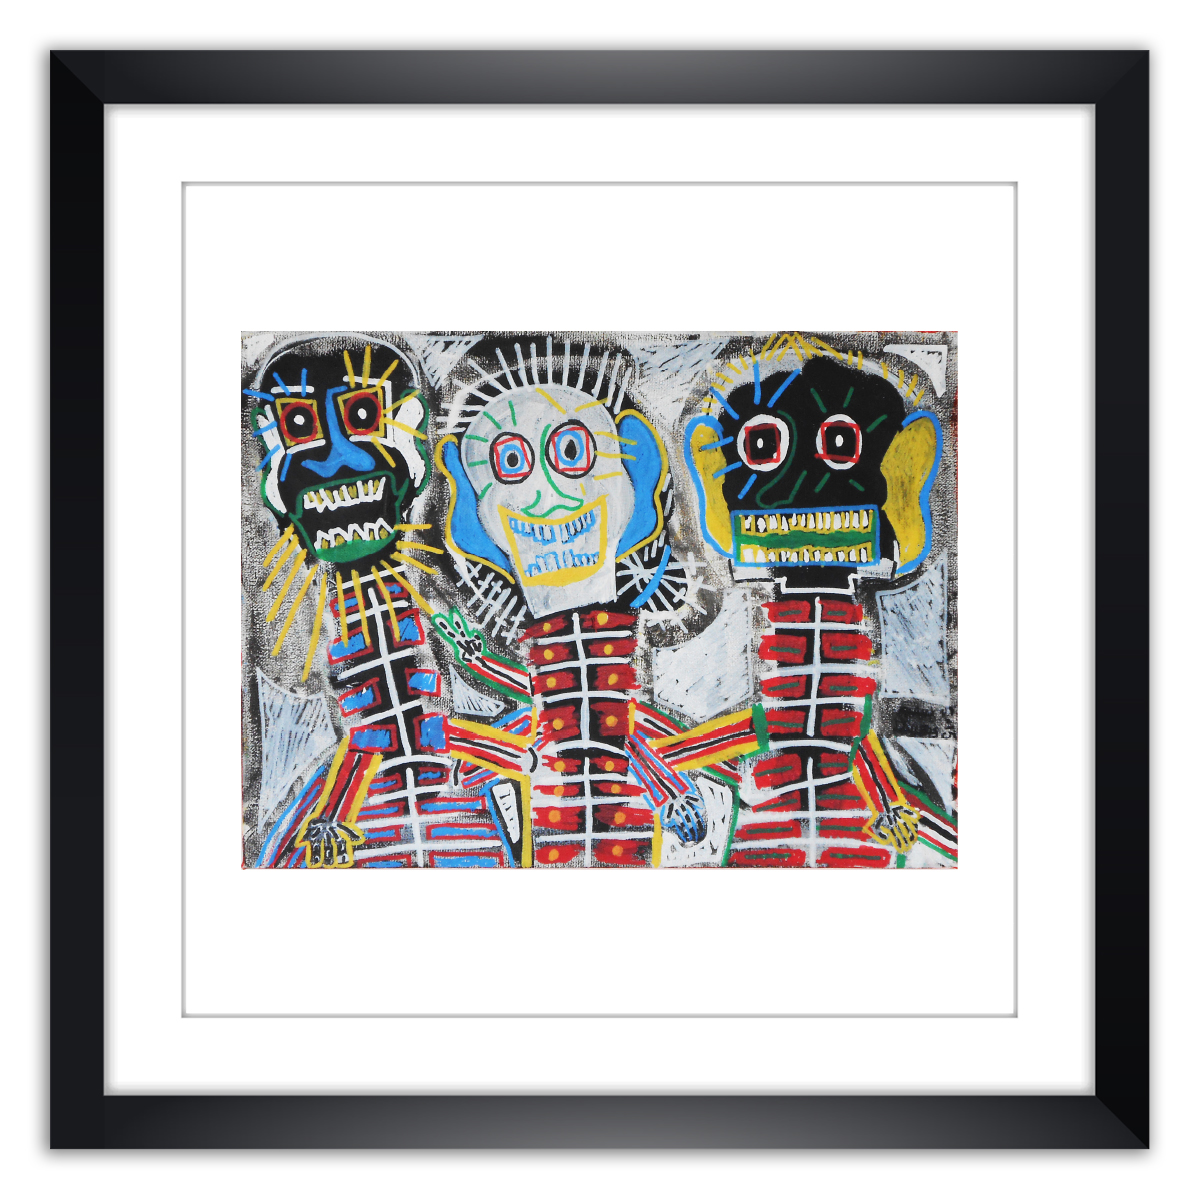 Limited prints - ME AND MY FRIENDS framed - Frank Willems